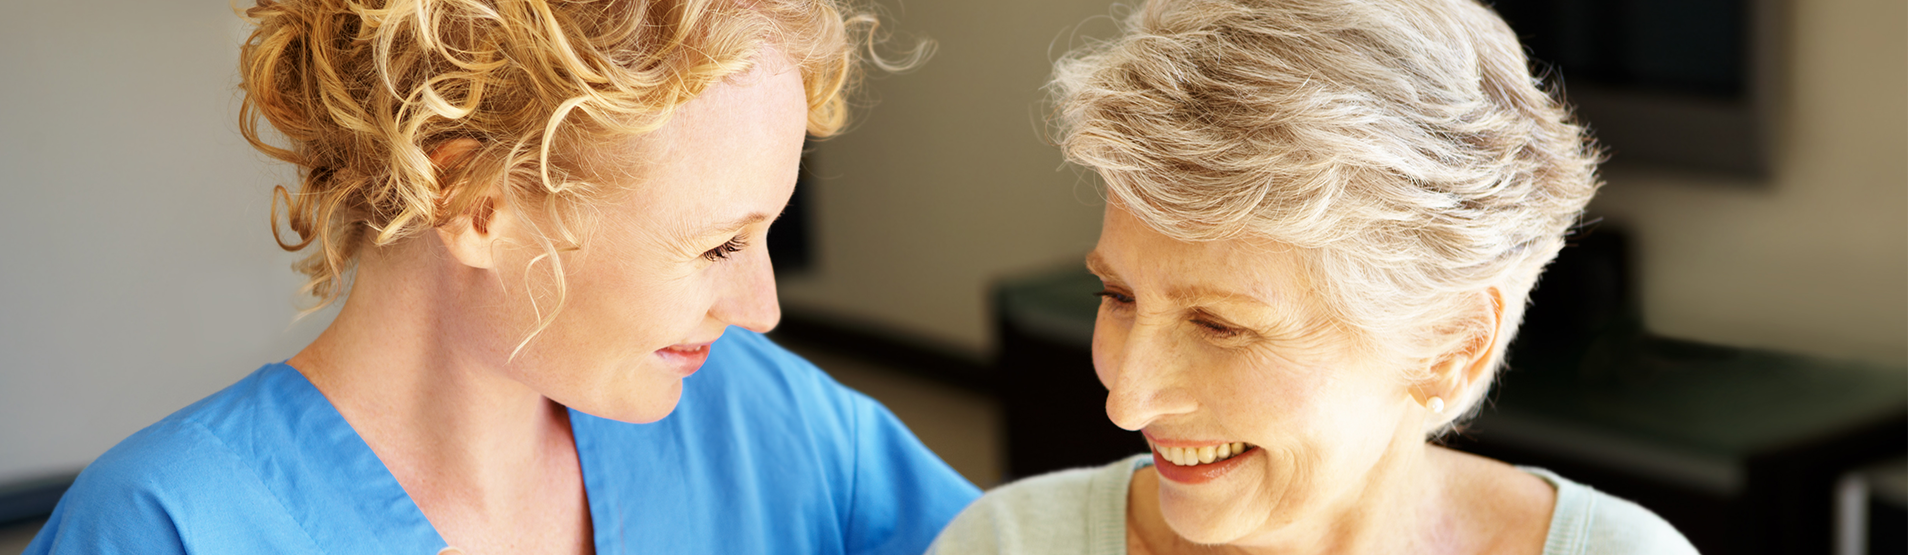 Skilled Nursing in Cape May County NJ